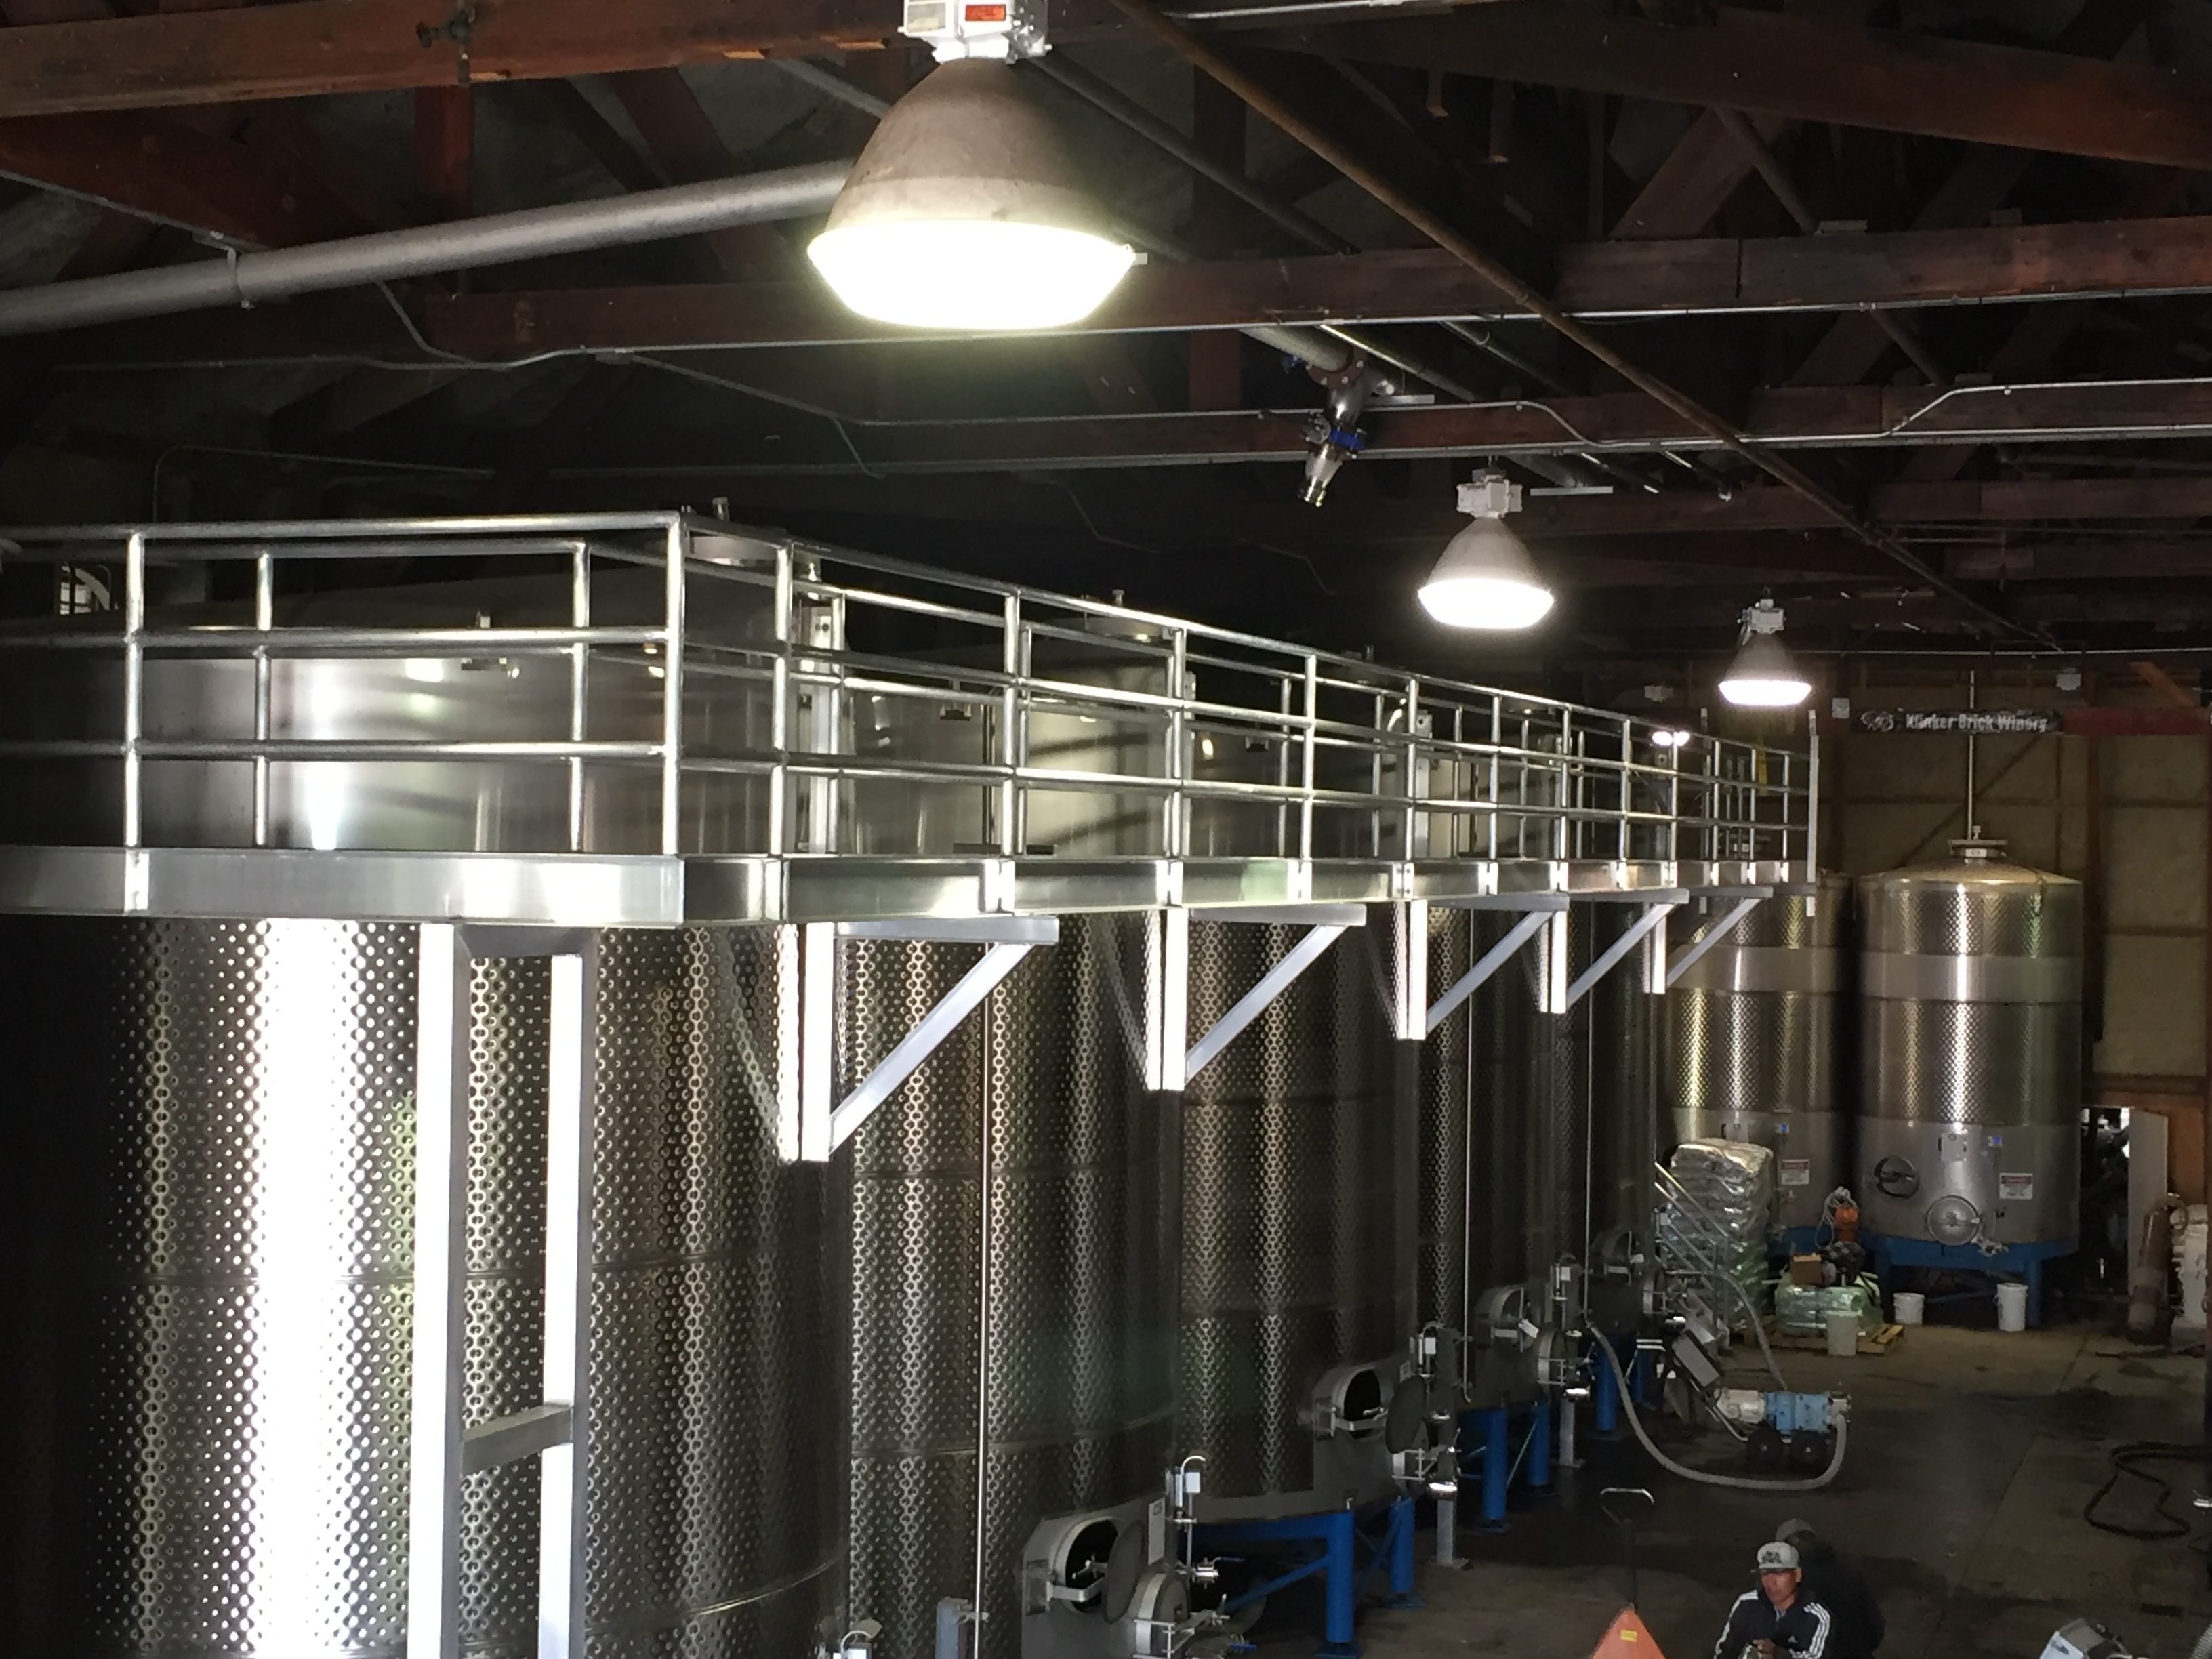 Winery | Sonnikson and Stordahl Construction